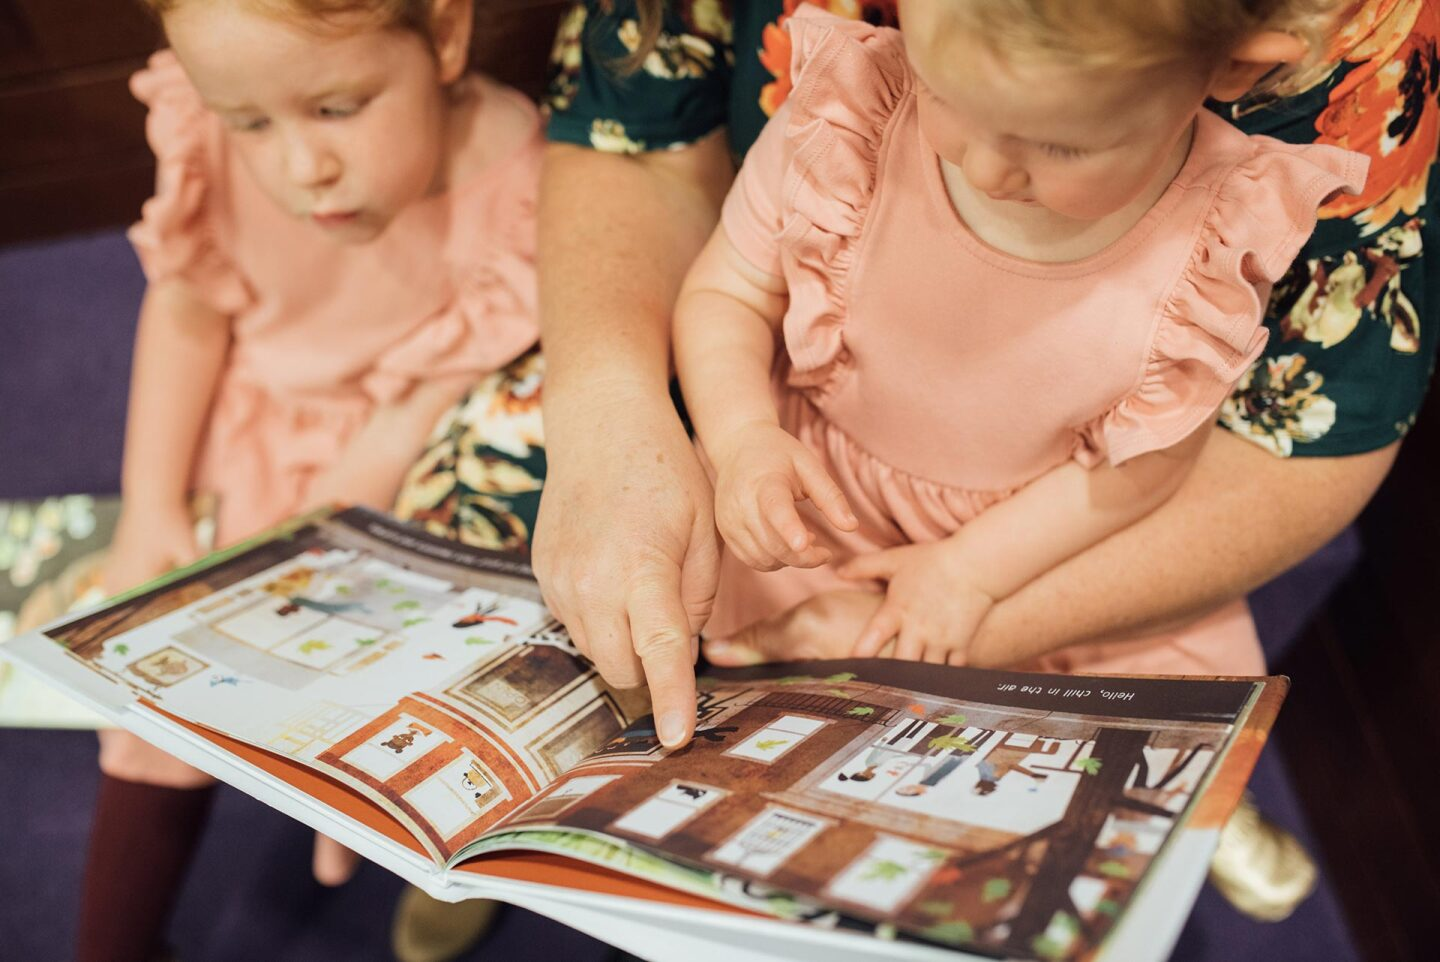 A woman reads over two little girls' shoulders who are wearing matching pink dresses as they hold a picture book.